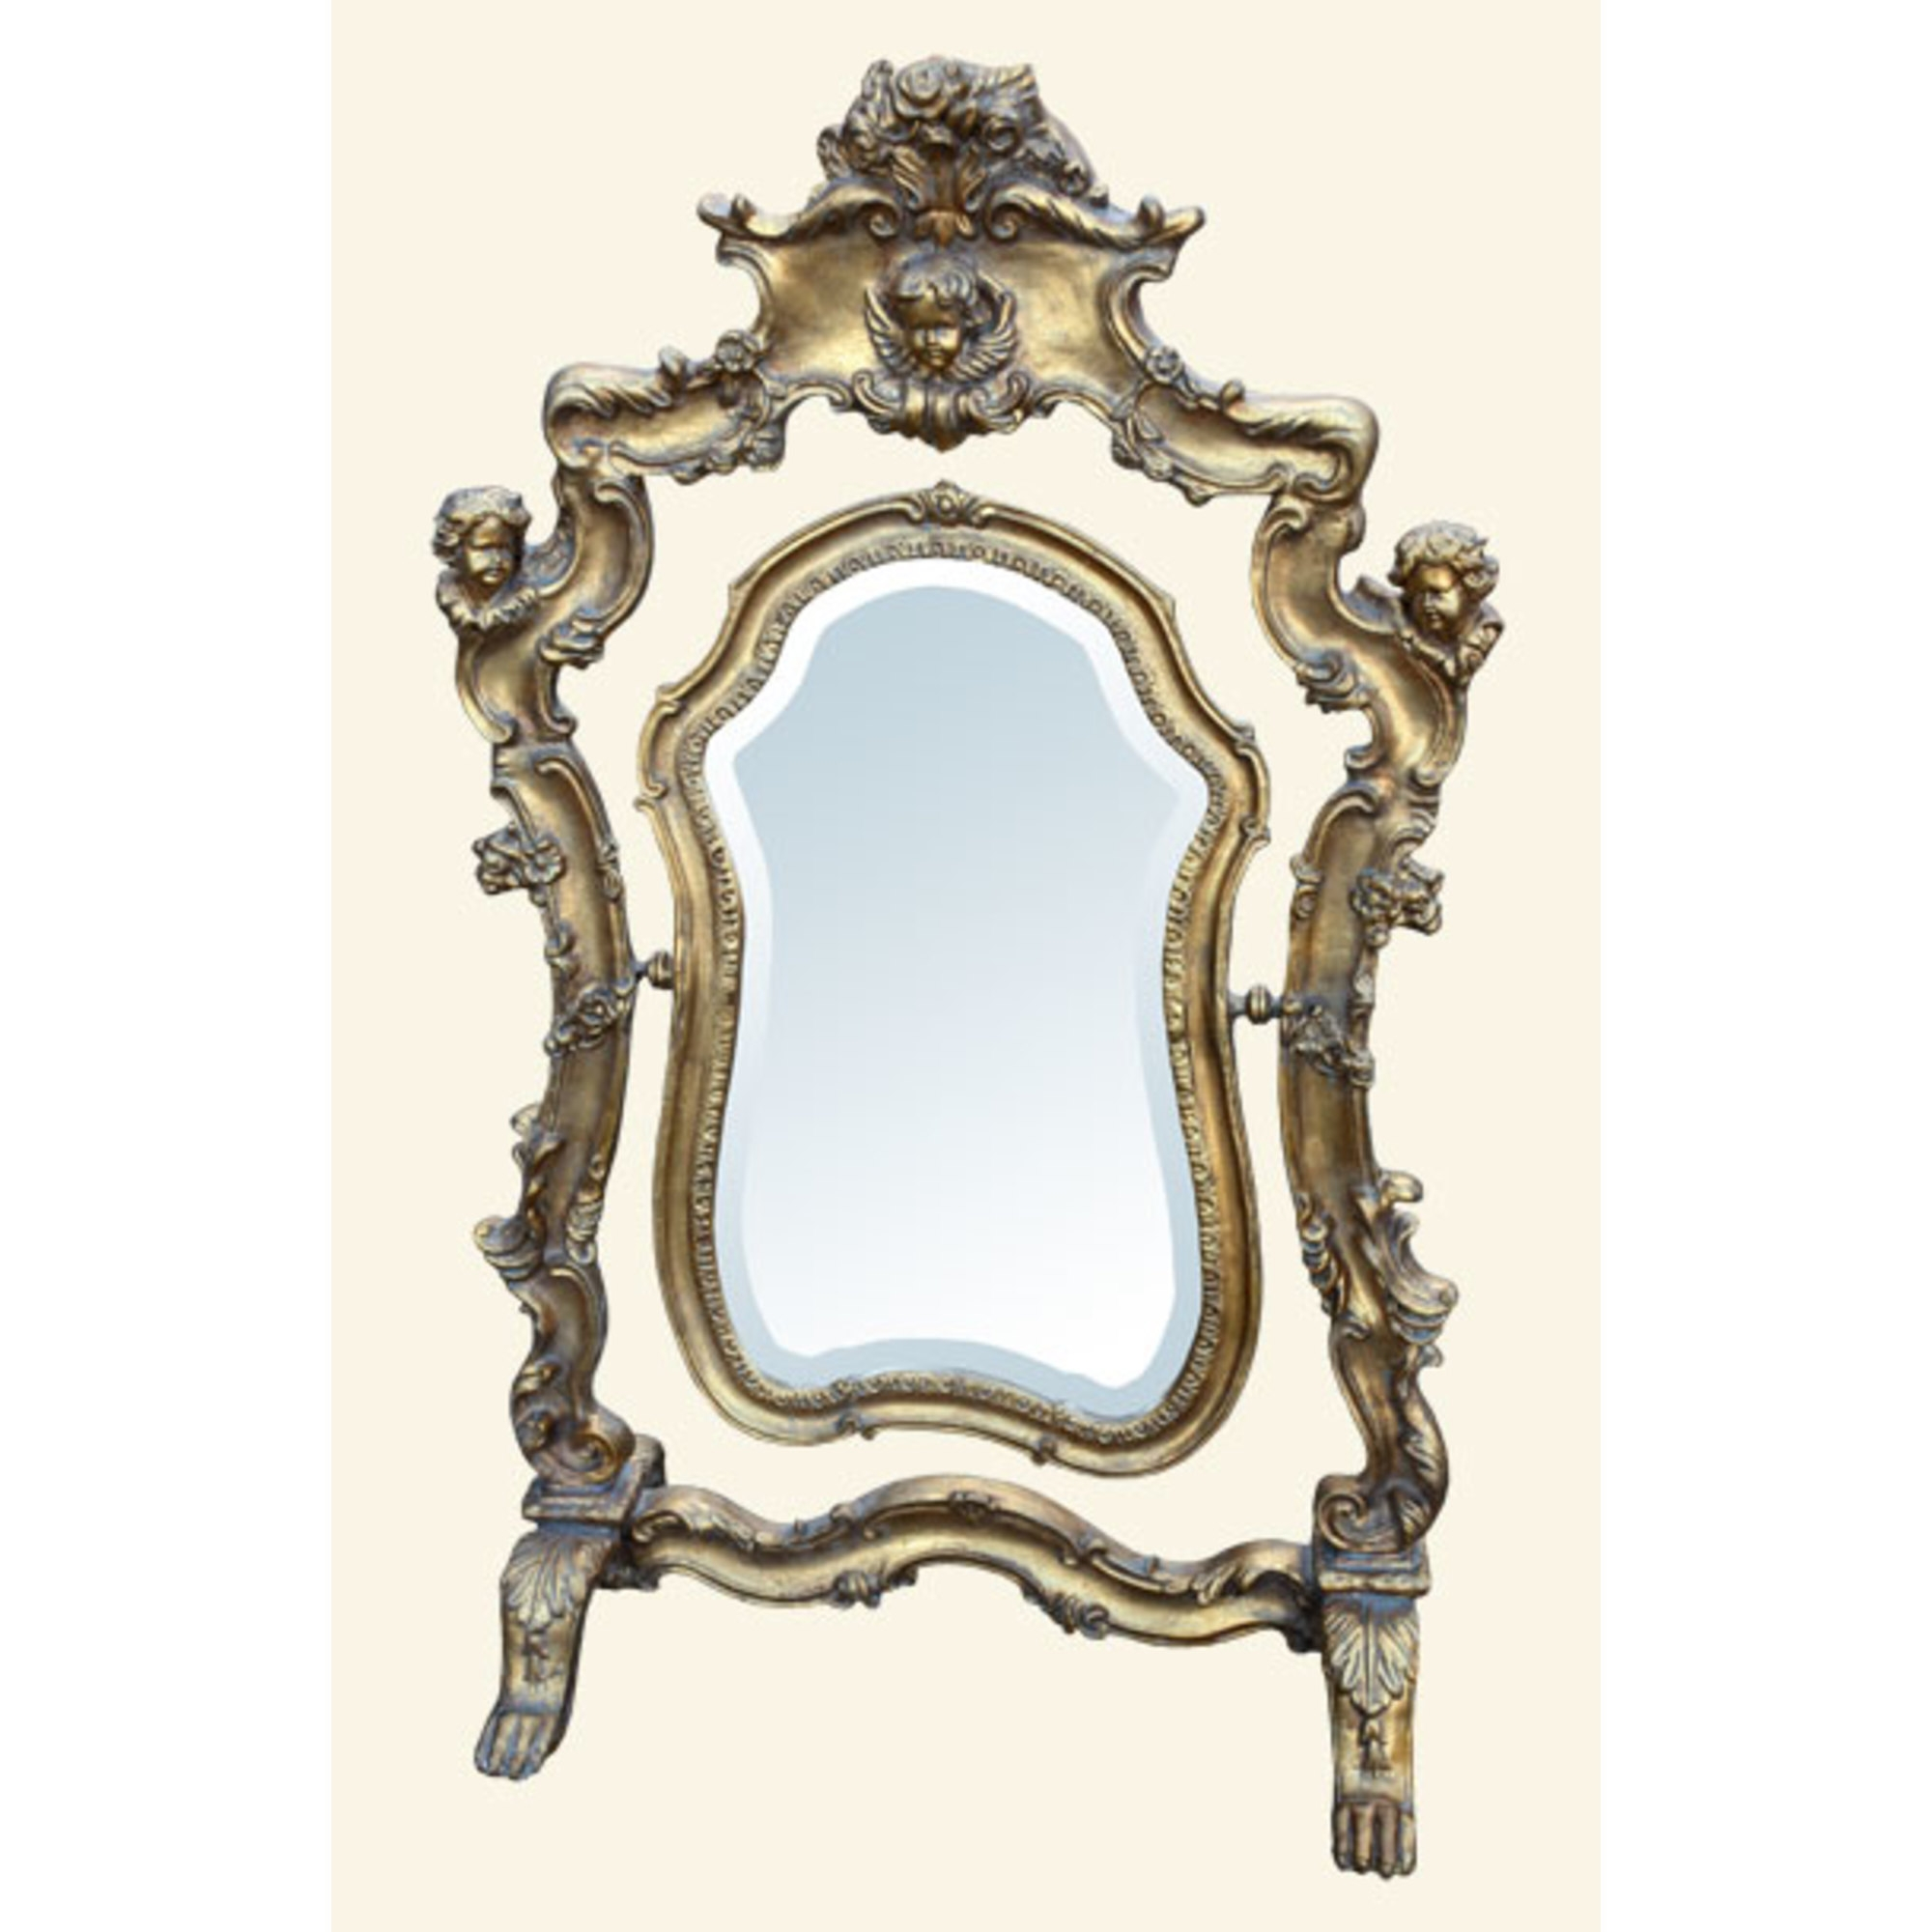 French Antique Gold Gilt Leaf Freestanding Table Swing Mirror with Cherubs